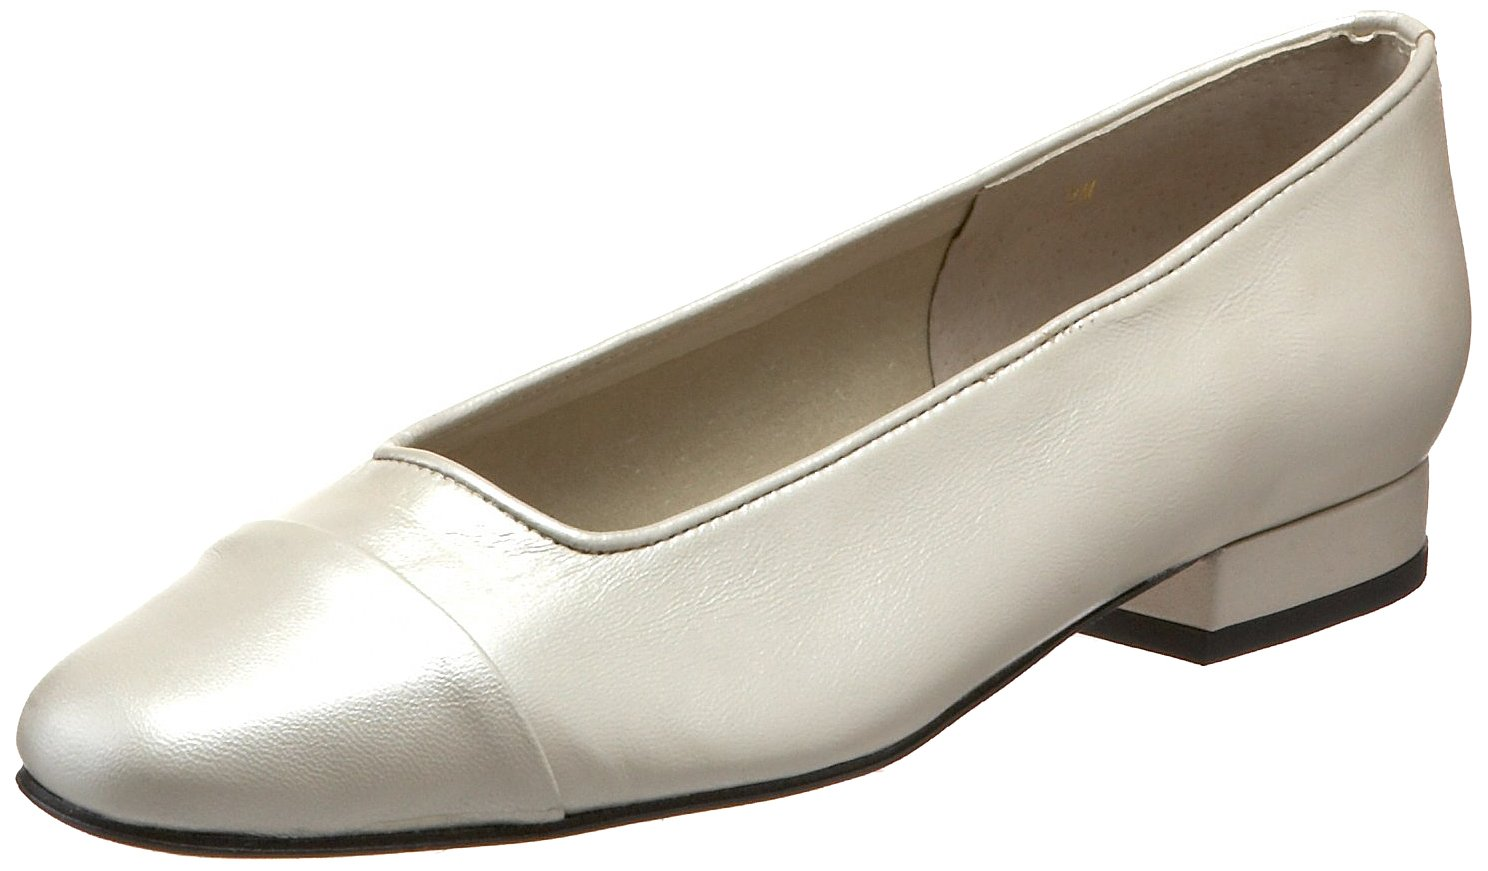 VANELi Women's FC-313 Flat B000PD6WE0 6 N US|Sand Pearl Nappa